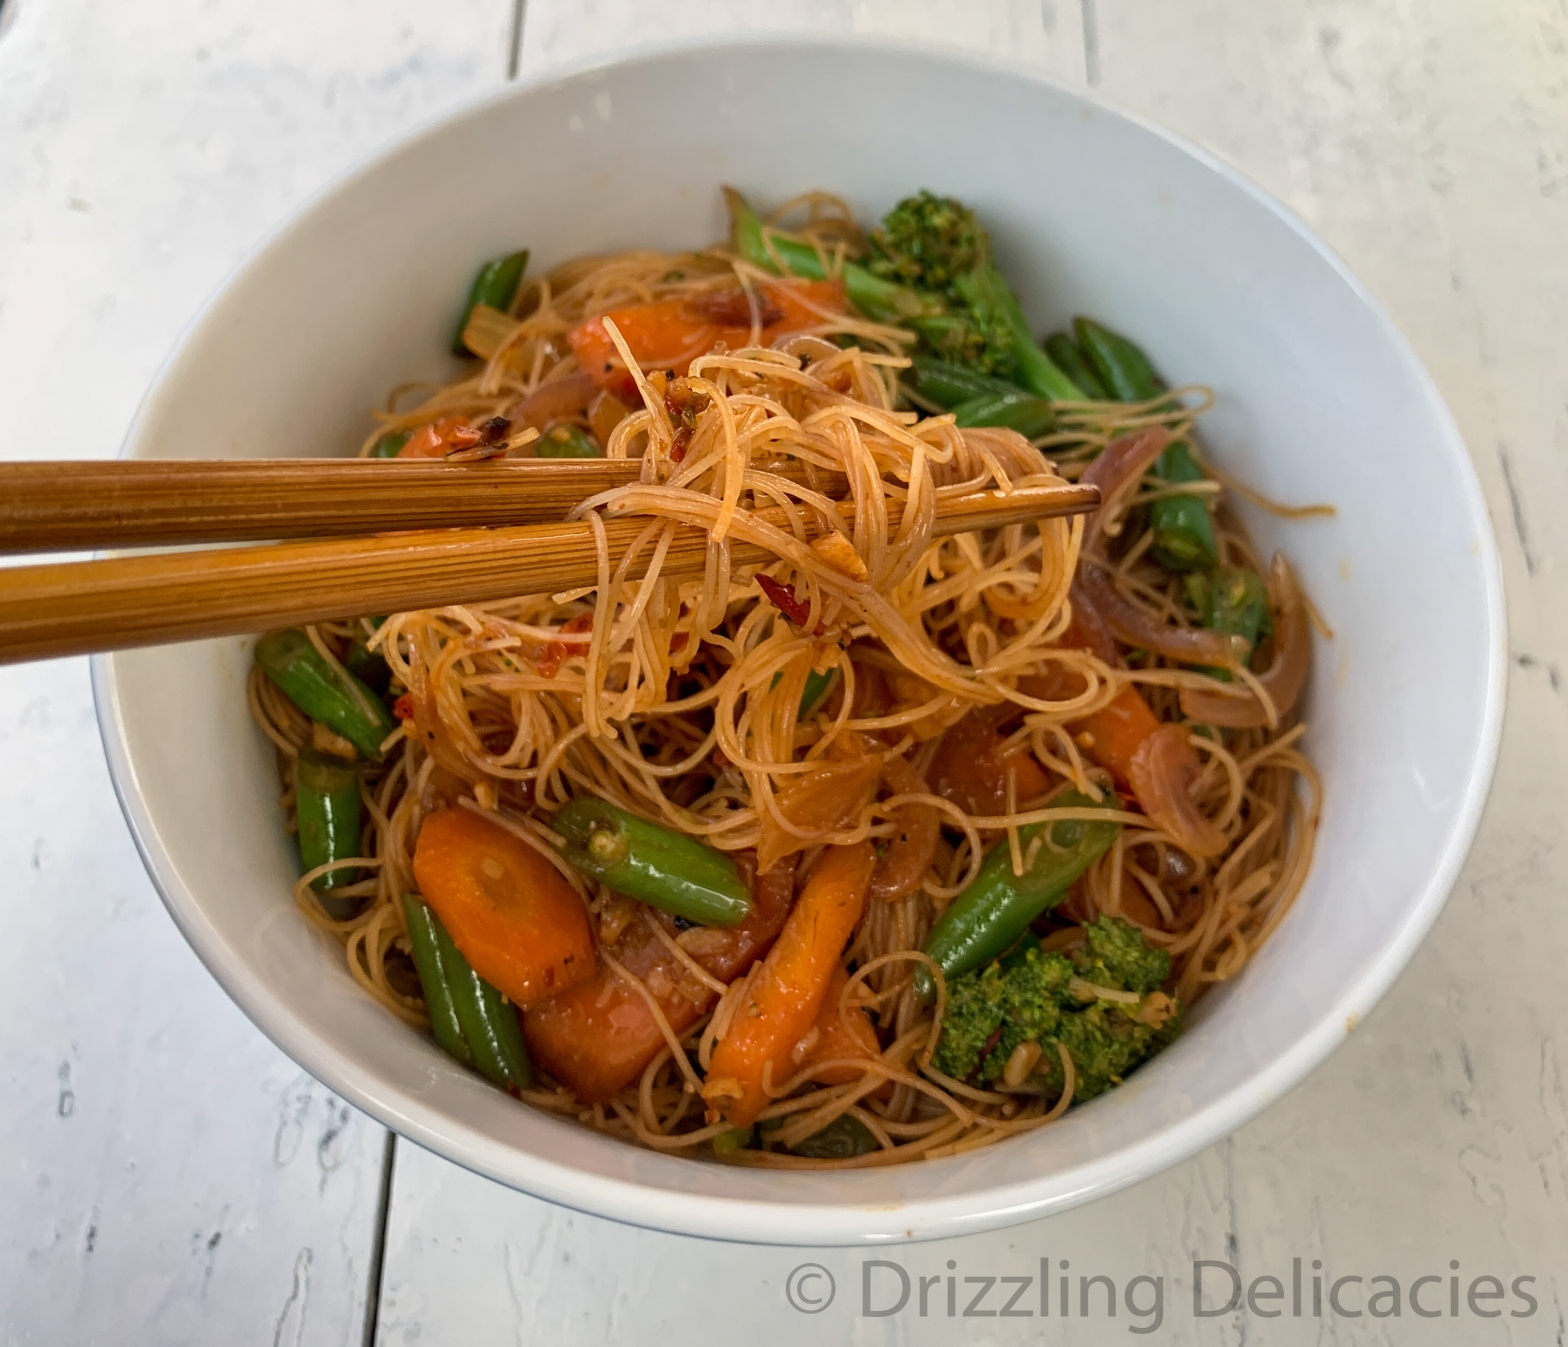 Rice Vermicelli tossed in fresh veggies and chili bean sauce